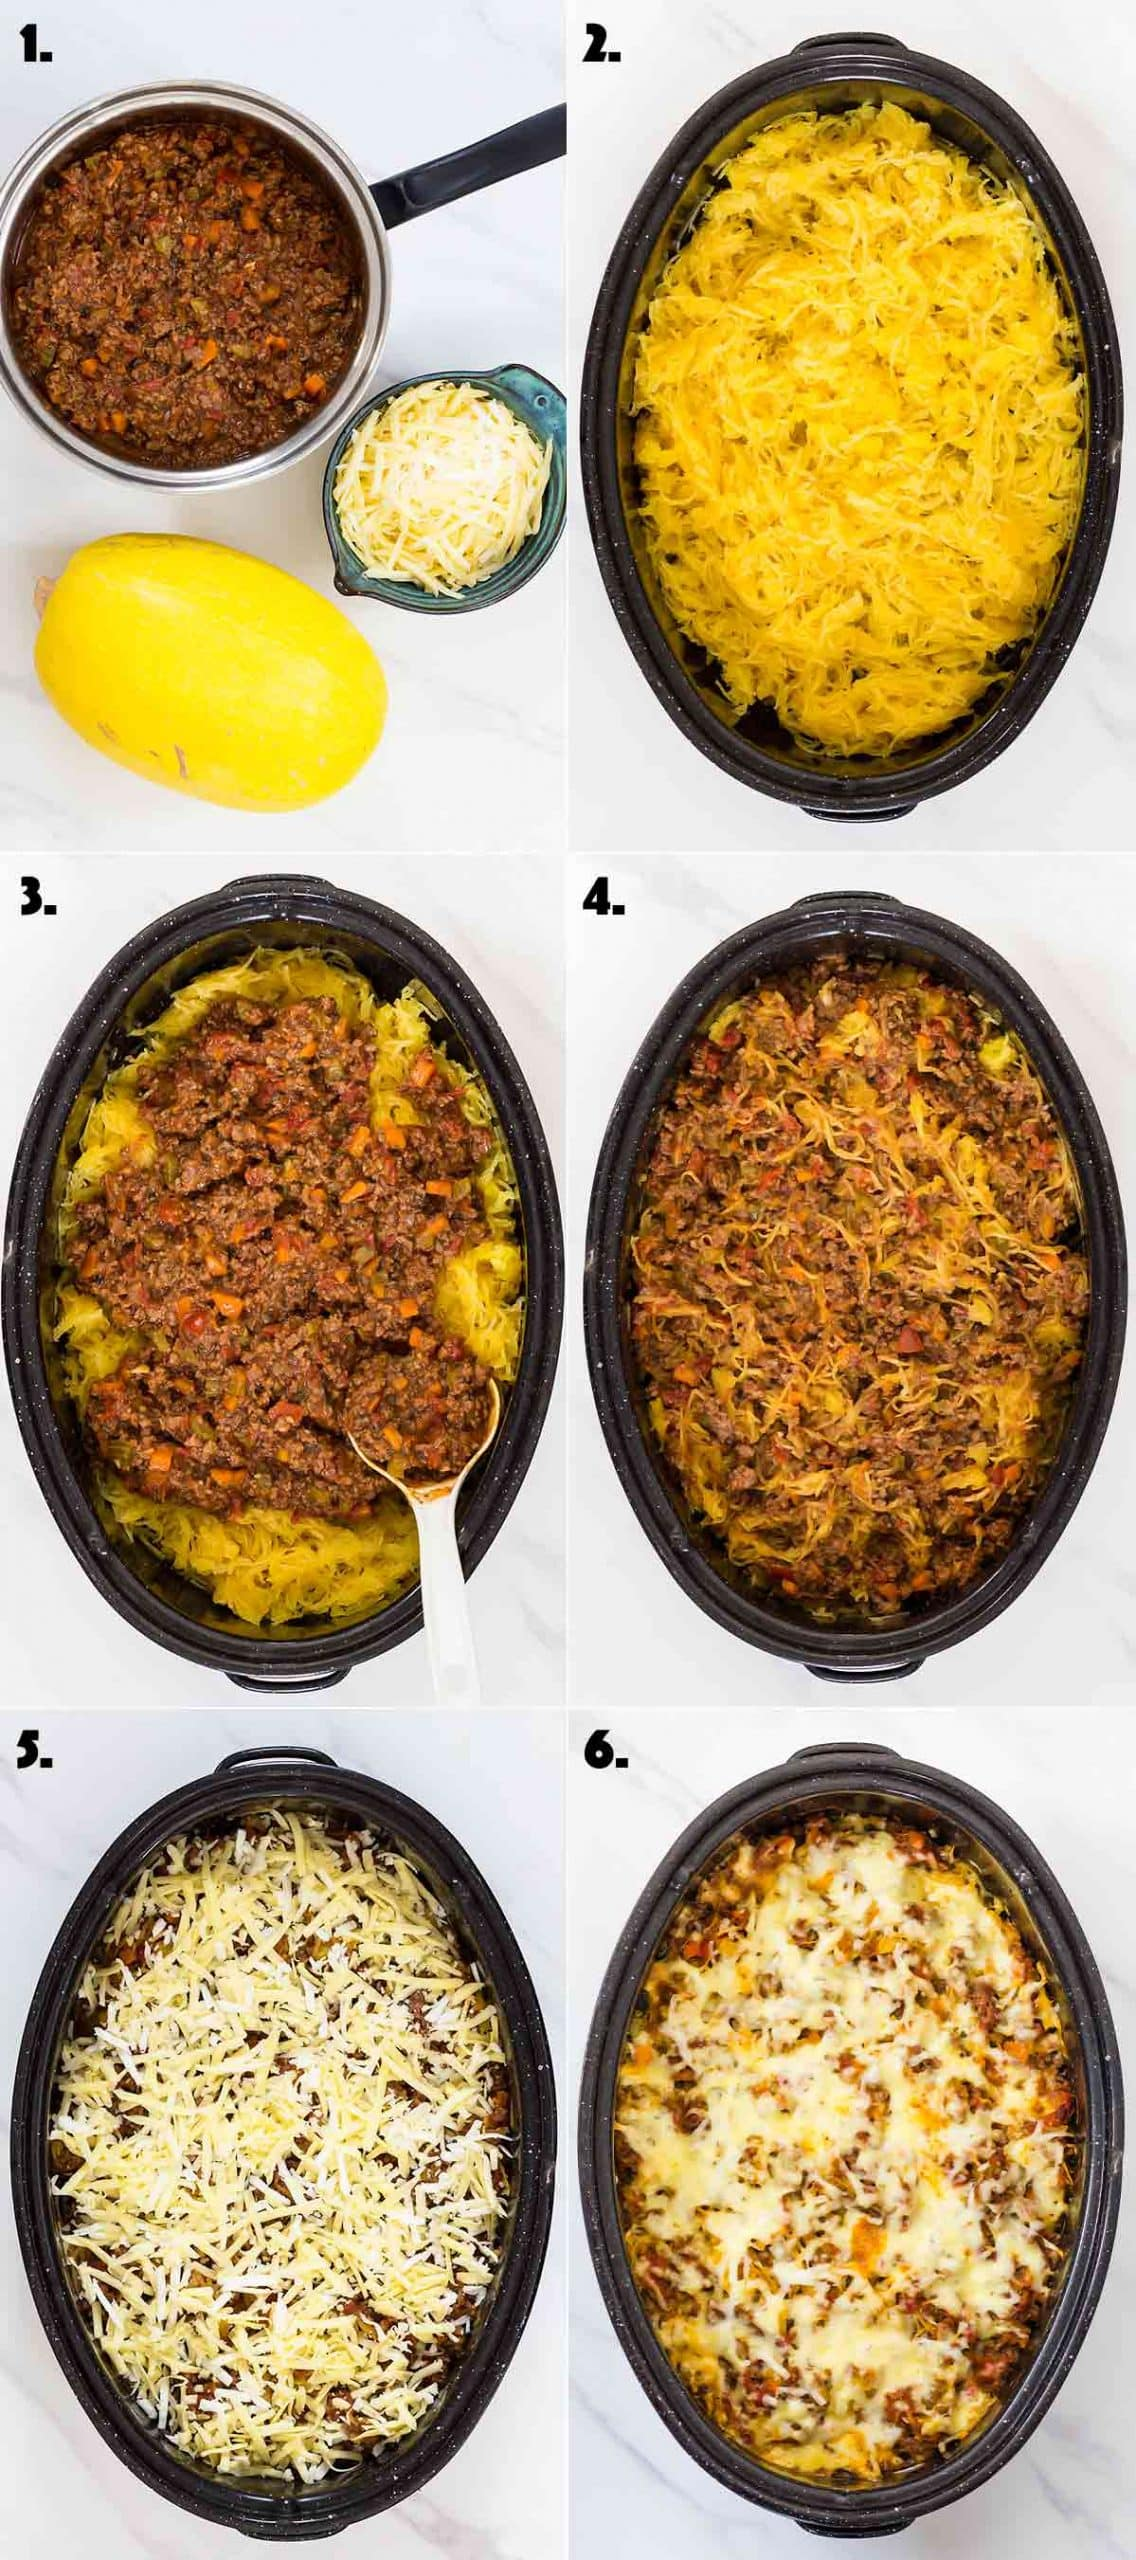 6 pictures showing step of how to make spaghetti squash casserole